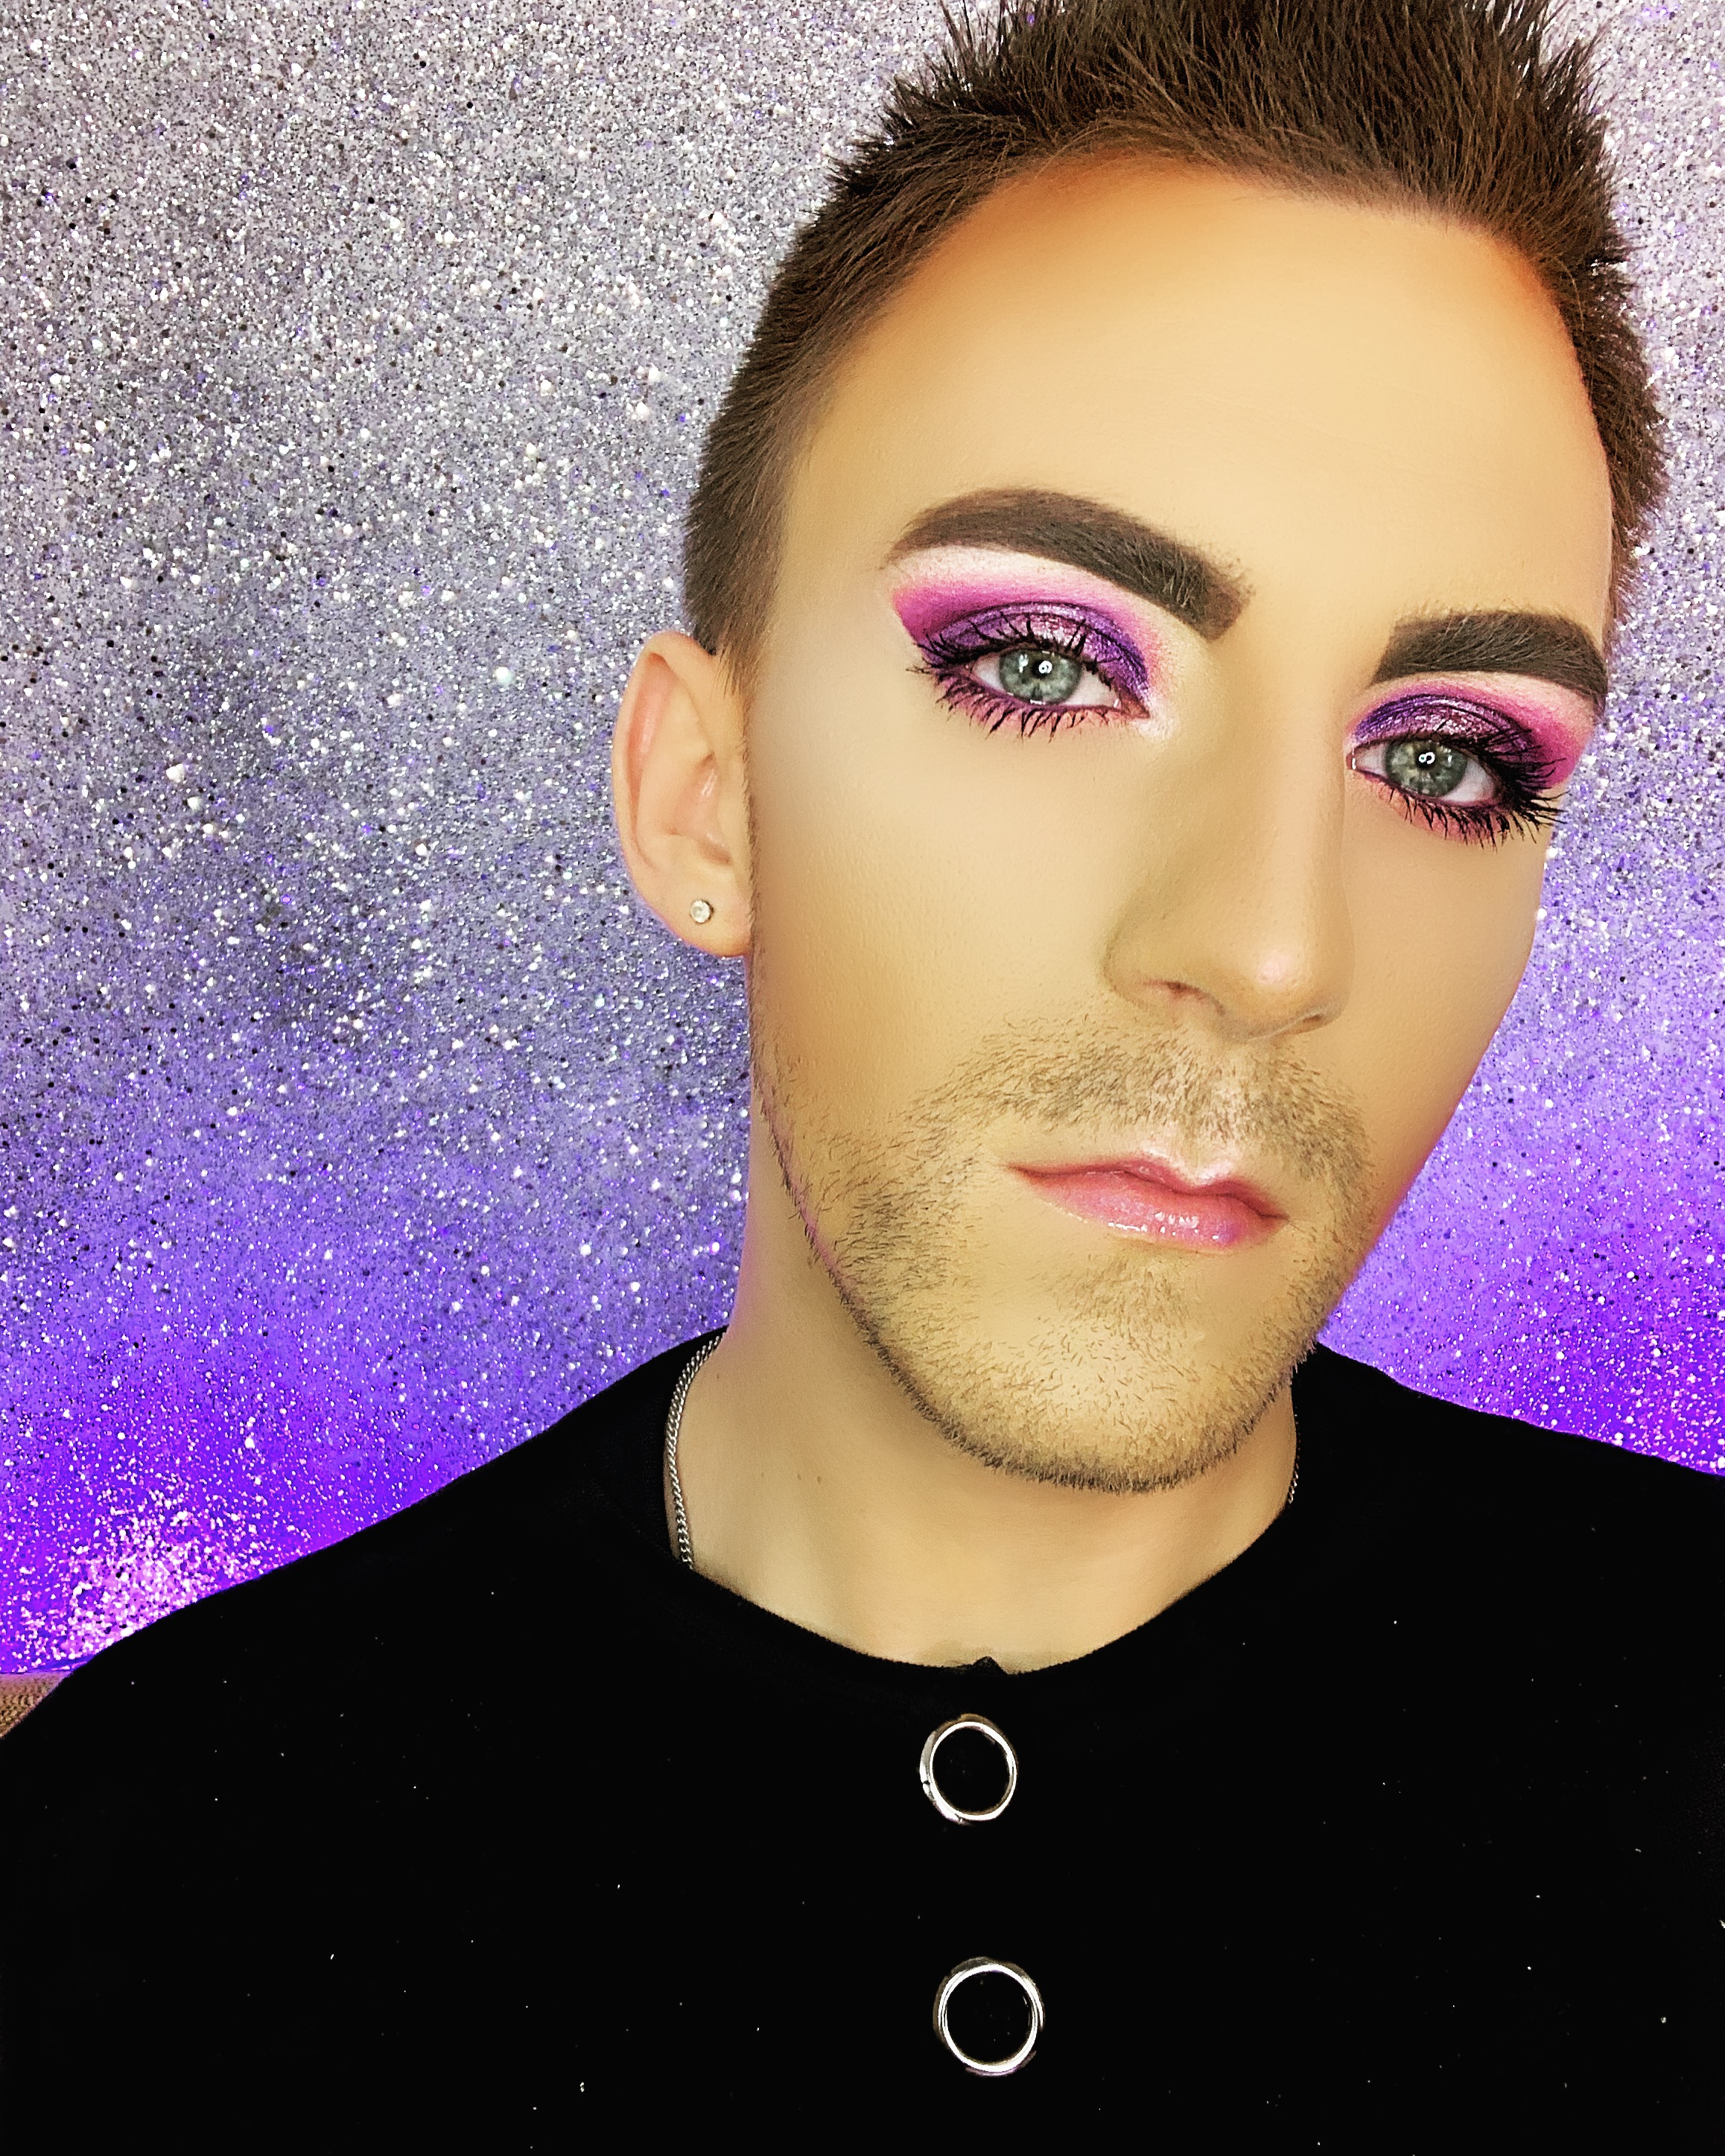 """@christopherjmua - Discount Code:""""christopherjmua""""Heeeyyyyy! I'm ChristopherJMUA but you can call me Chris if you want to. I believe that beauty is on the inside (but a little makeup never hurt anyone.) I'm all about feeing empowered as an individual and being the best you that you can be, no matter what! I started my YouTube channel in the hopes that maybe I can help others see the beauty that's inside themselves and let people know that it's okay to be you. I just hope that you always remember and never forget.... that you're beautiful.-Christopher"""